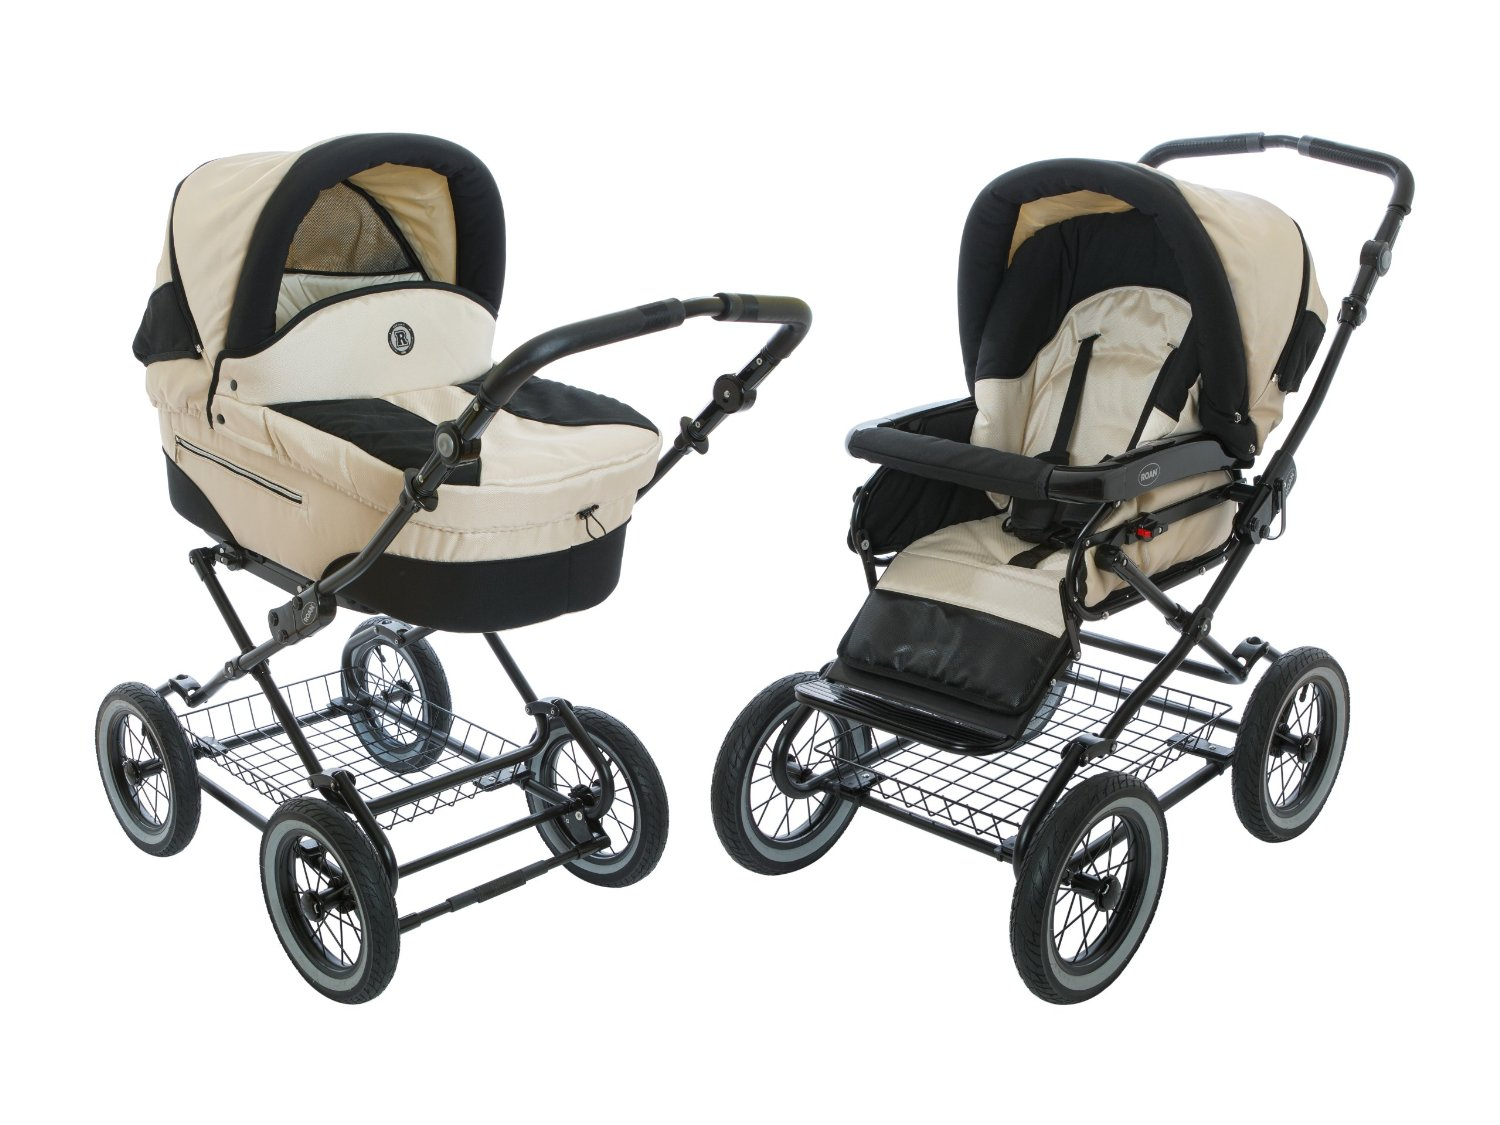 Baby Strollers: Jogging, Pram, Travel, Car Seat, Twin